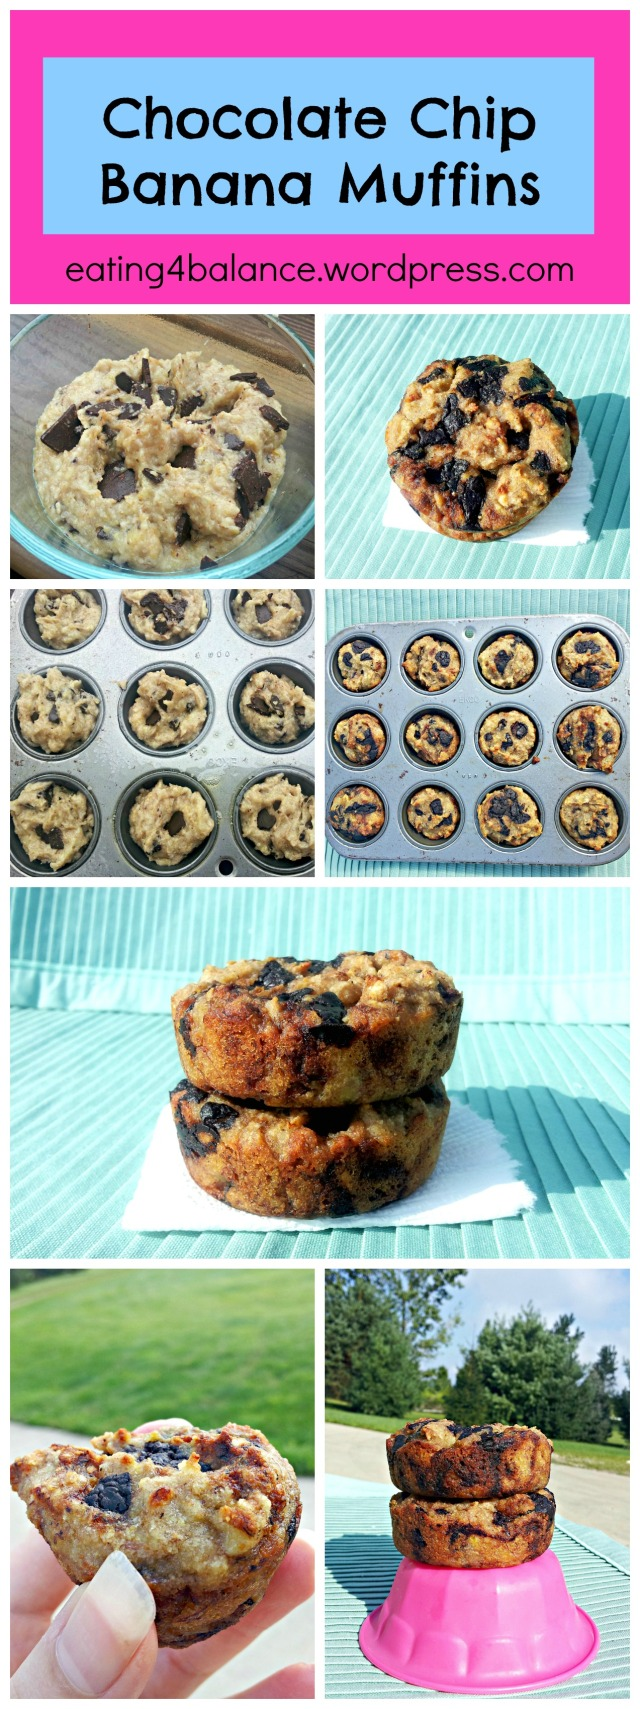 pin-party-chocolate-chip-banana-muffins-final